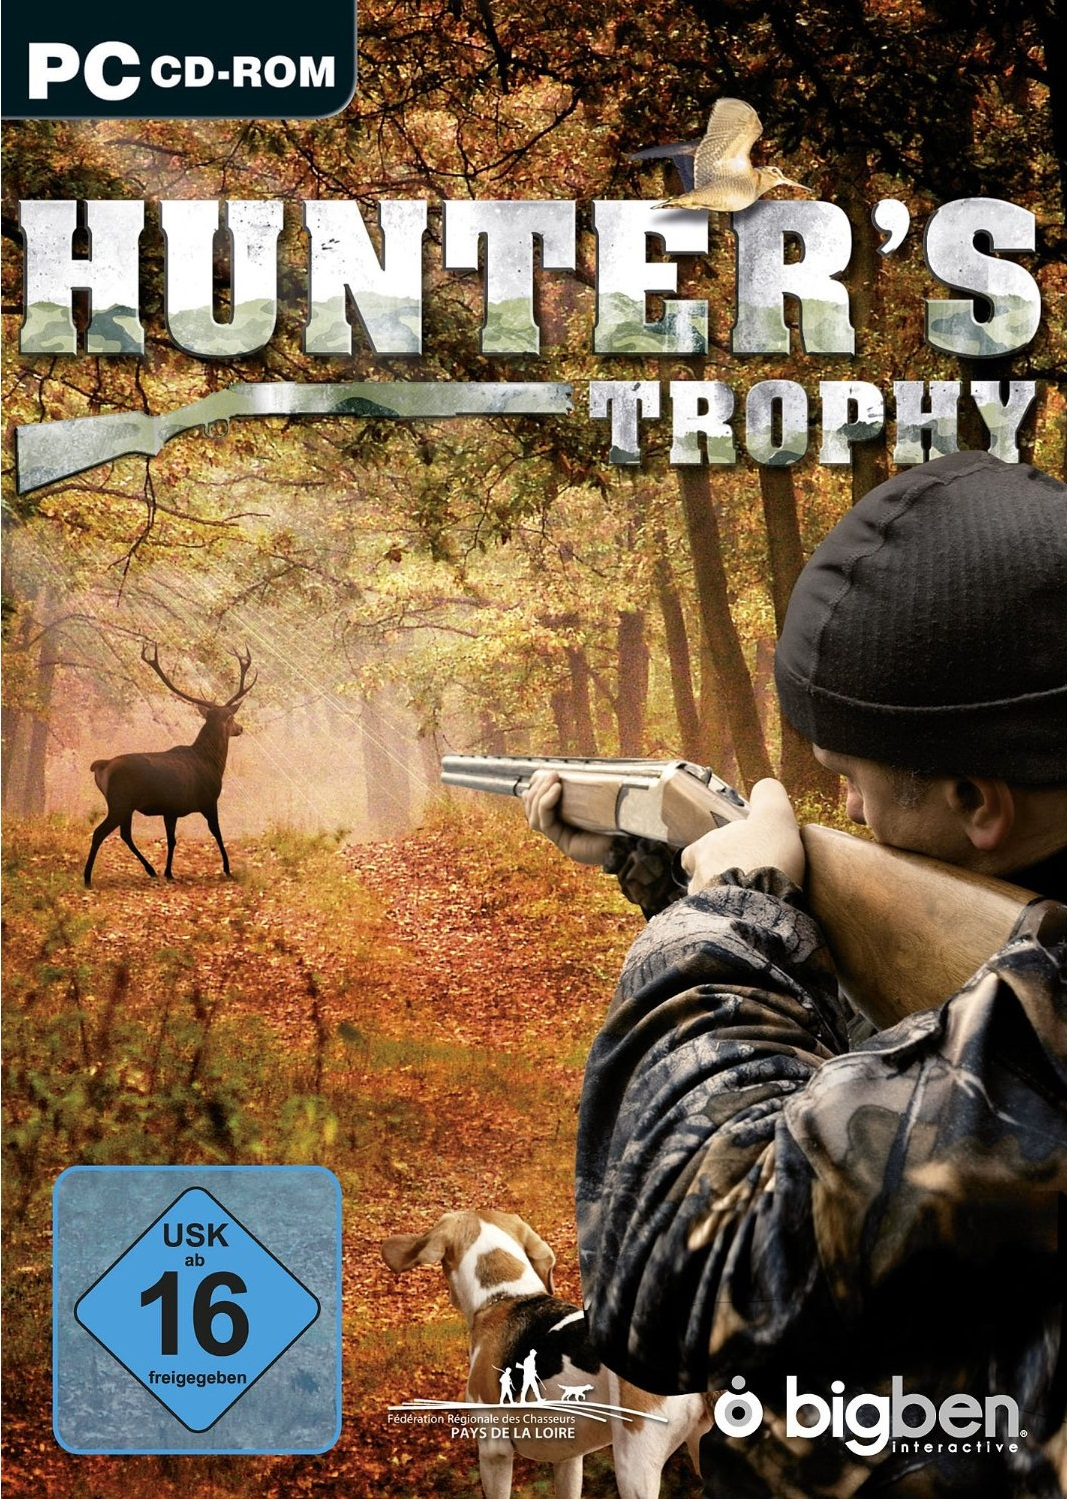 Dream Games: Hunters Trophy-